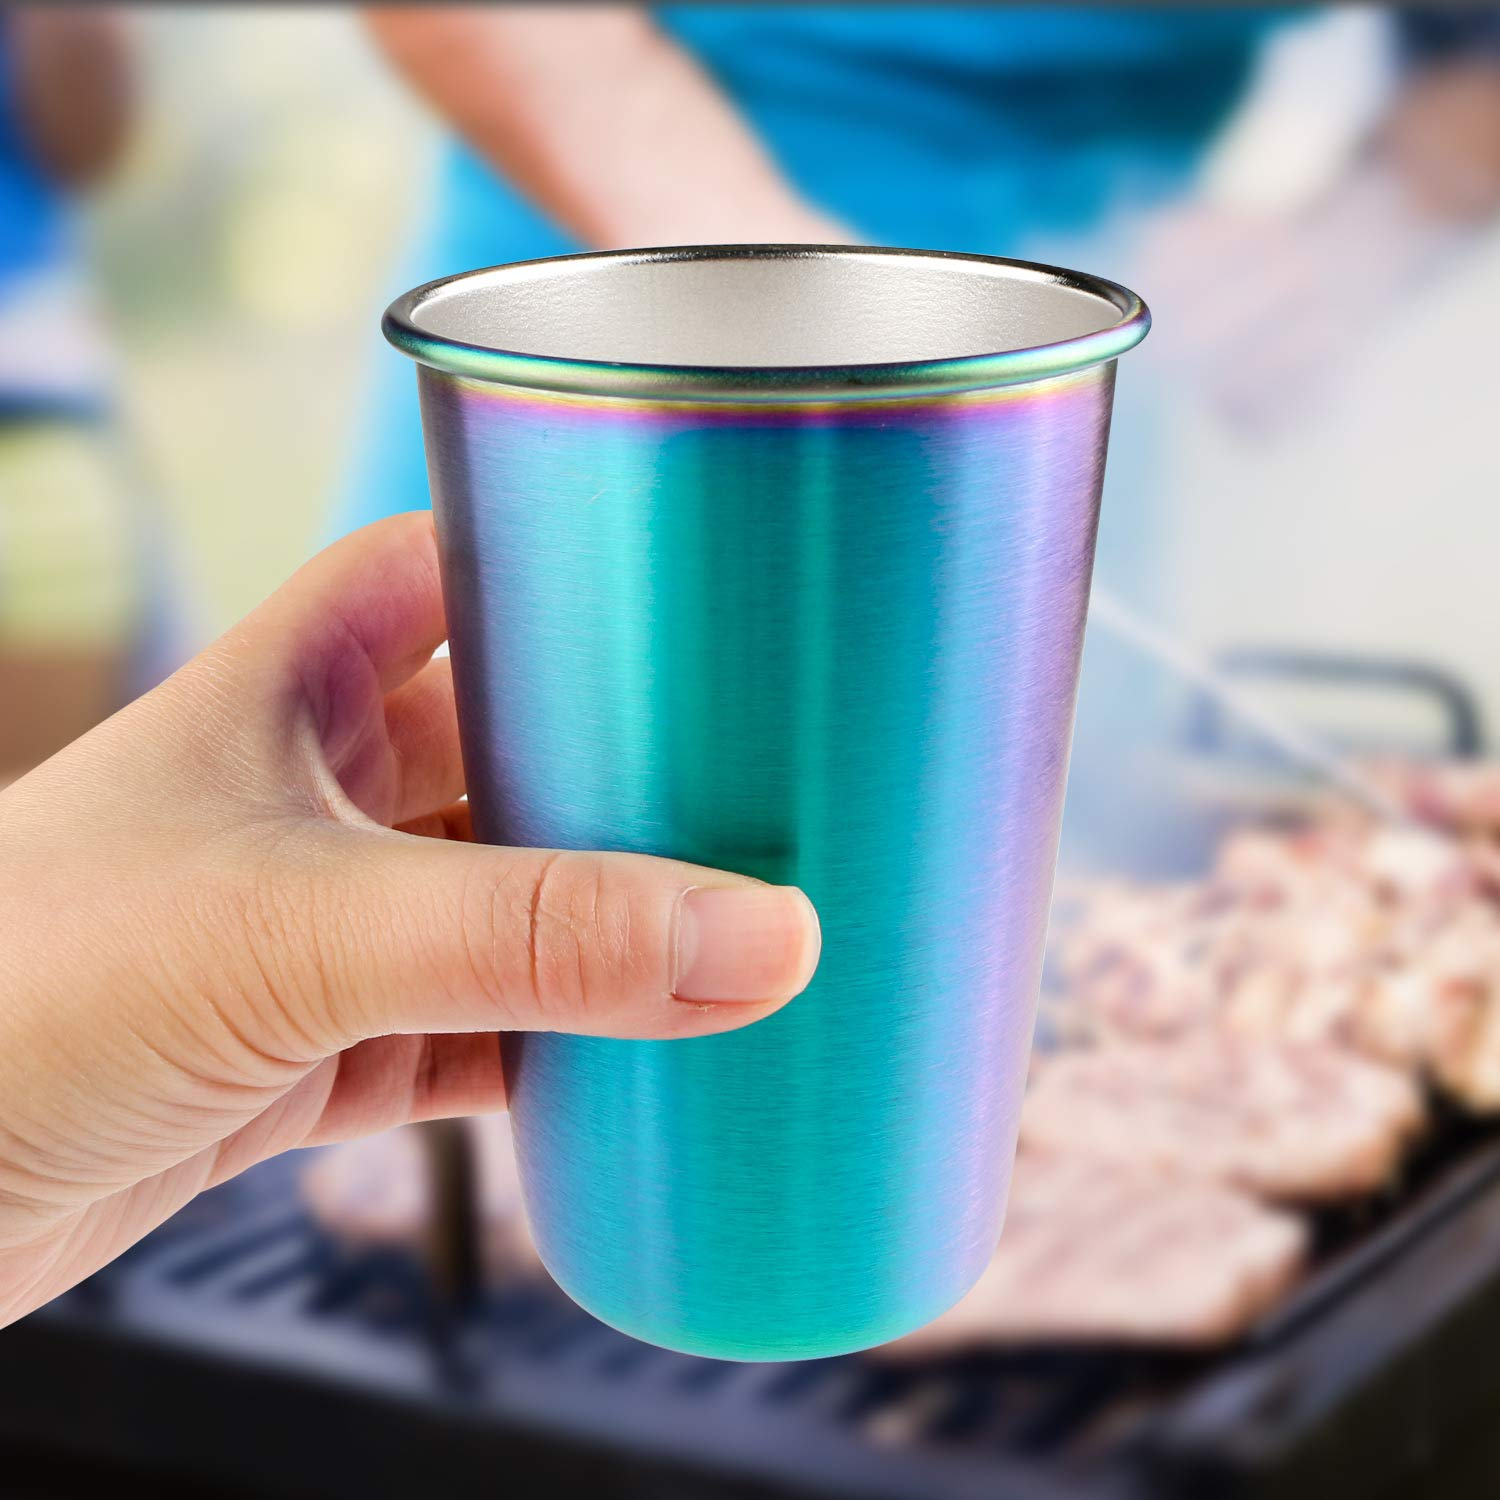 Rainbow Party Cups, Kereda Stainless Steel Cups 16oz 5-Pack Premium Drinking Glasses Unbreakable Colorful Tumblers BPA Free Eco Friendly by KEREDA (Image #9)